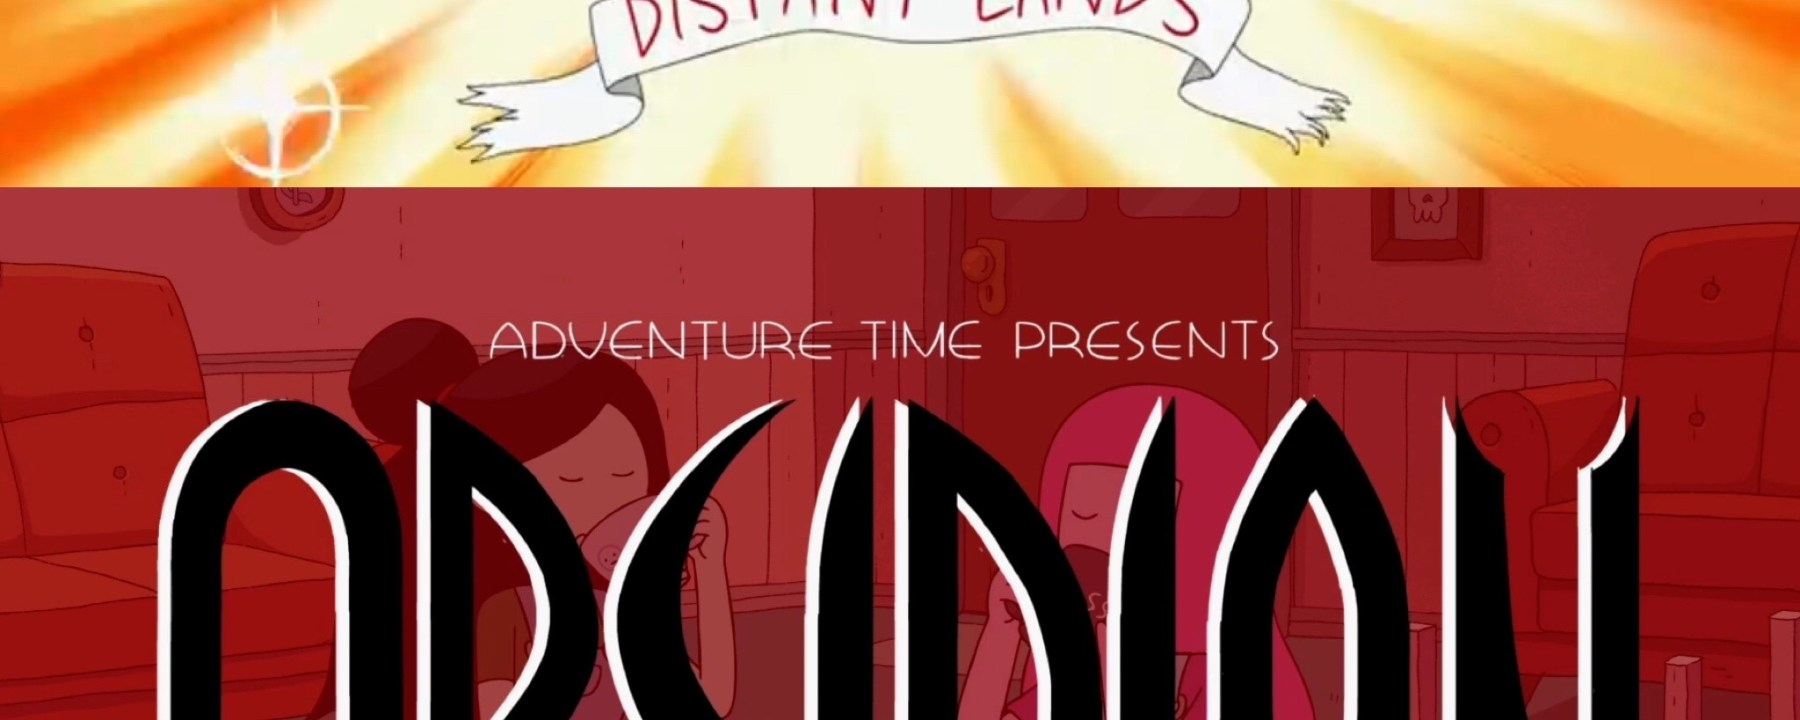 Adventure Time: Distant Lands- Obsidian Title Card